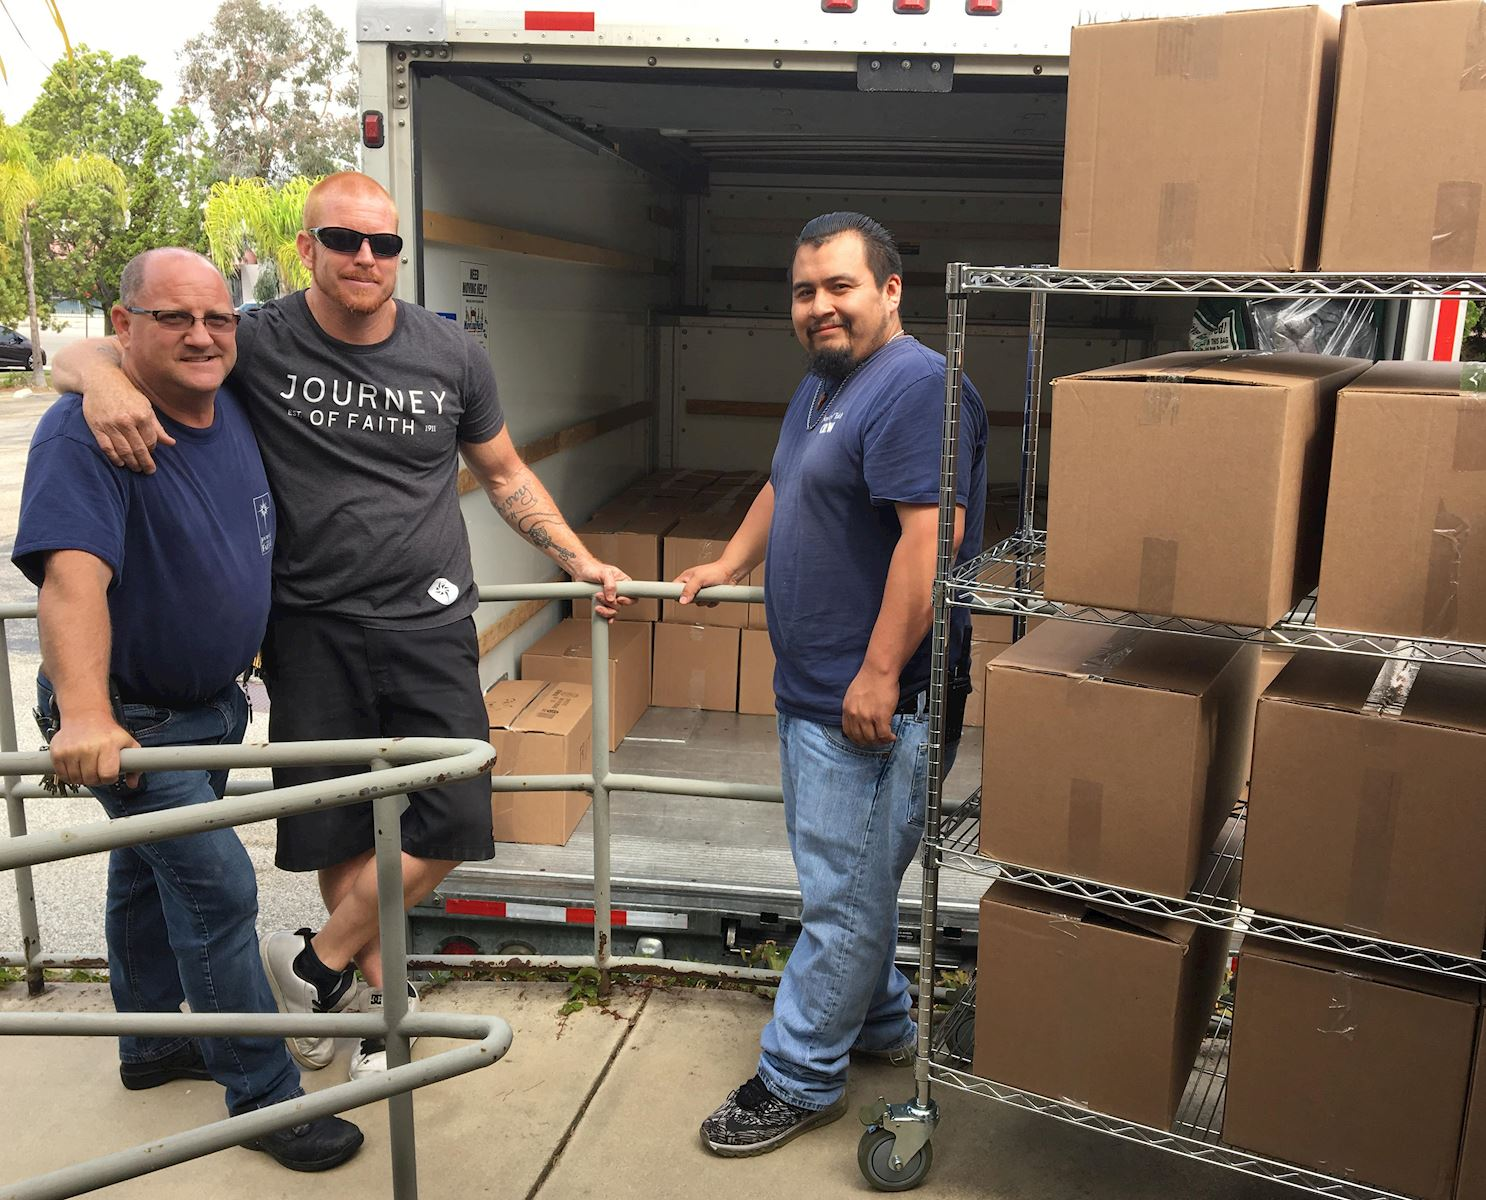 Journey of Faith delivers nearly 3,000 pounds of food